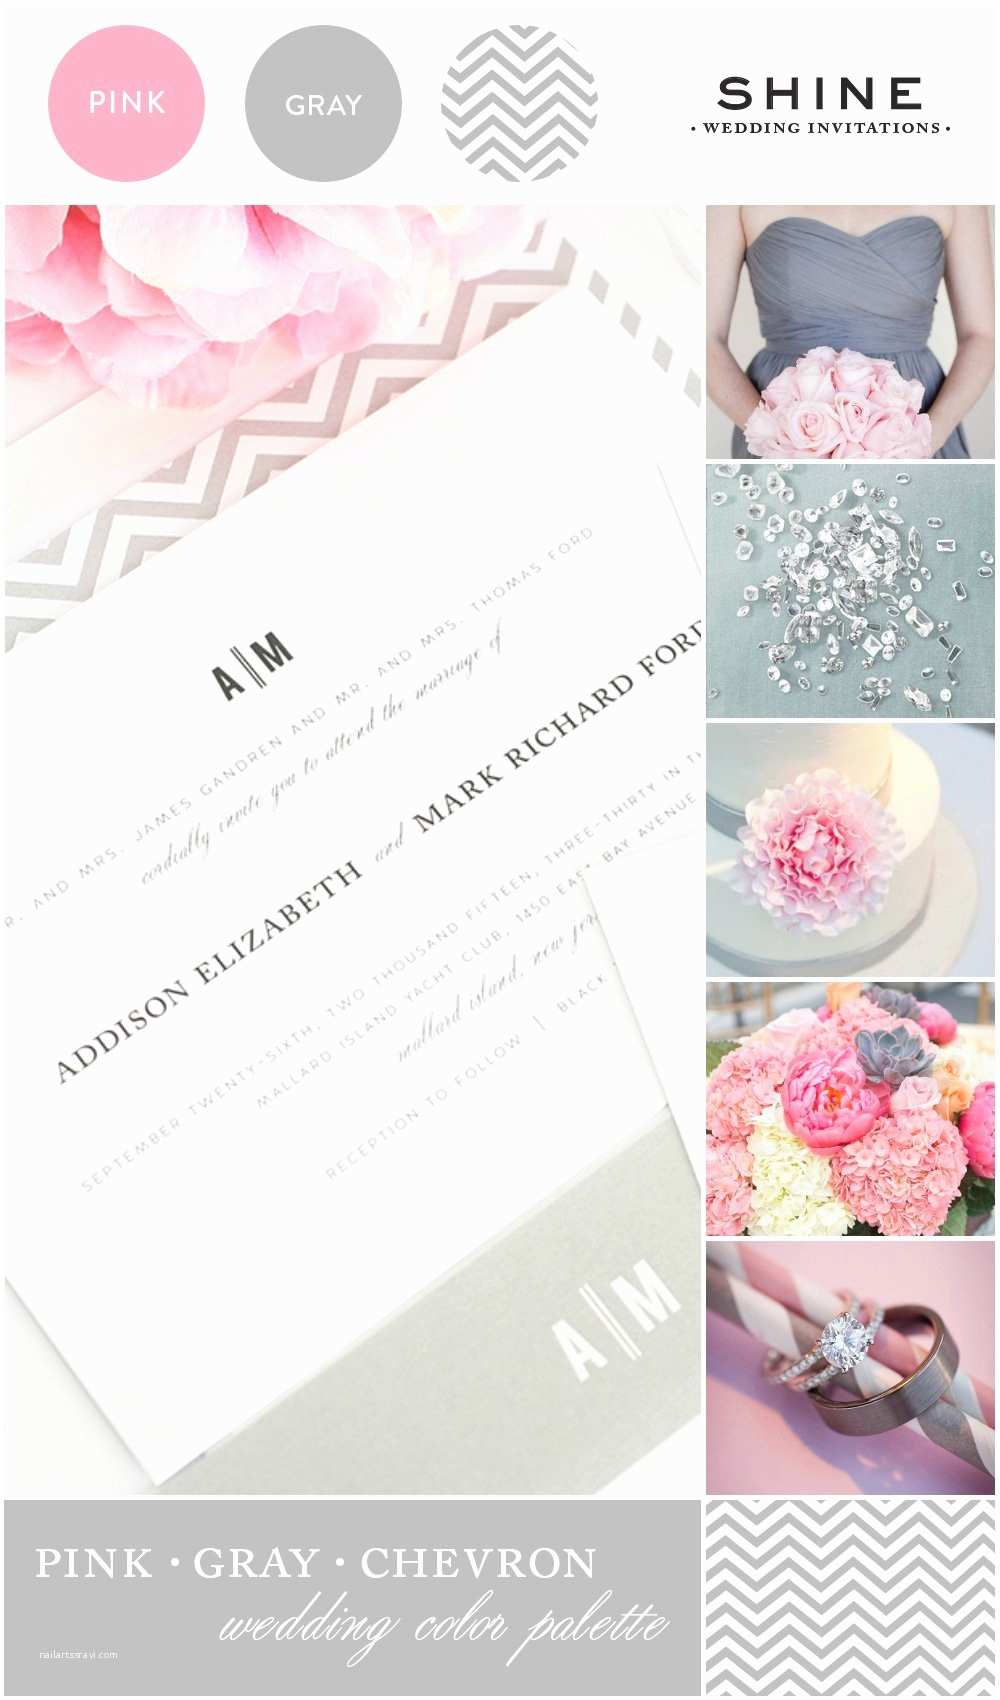 Pink and Gray Wedding Invitations Pink and Gray Chevron Wedding Inspiration – Wedding